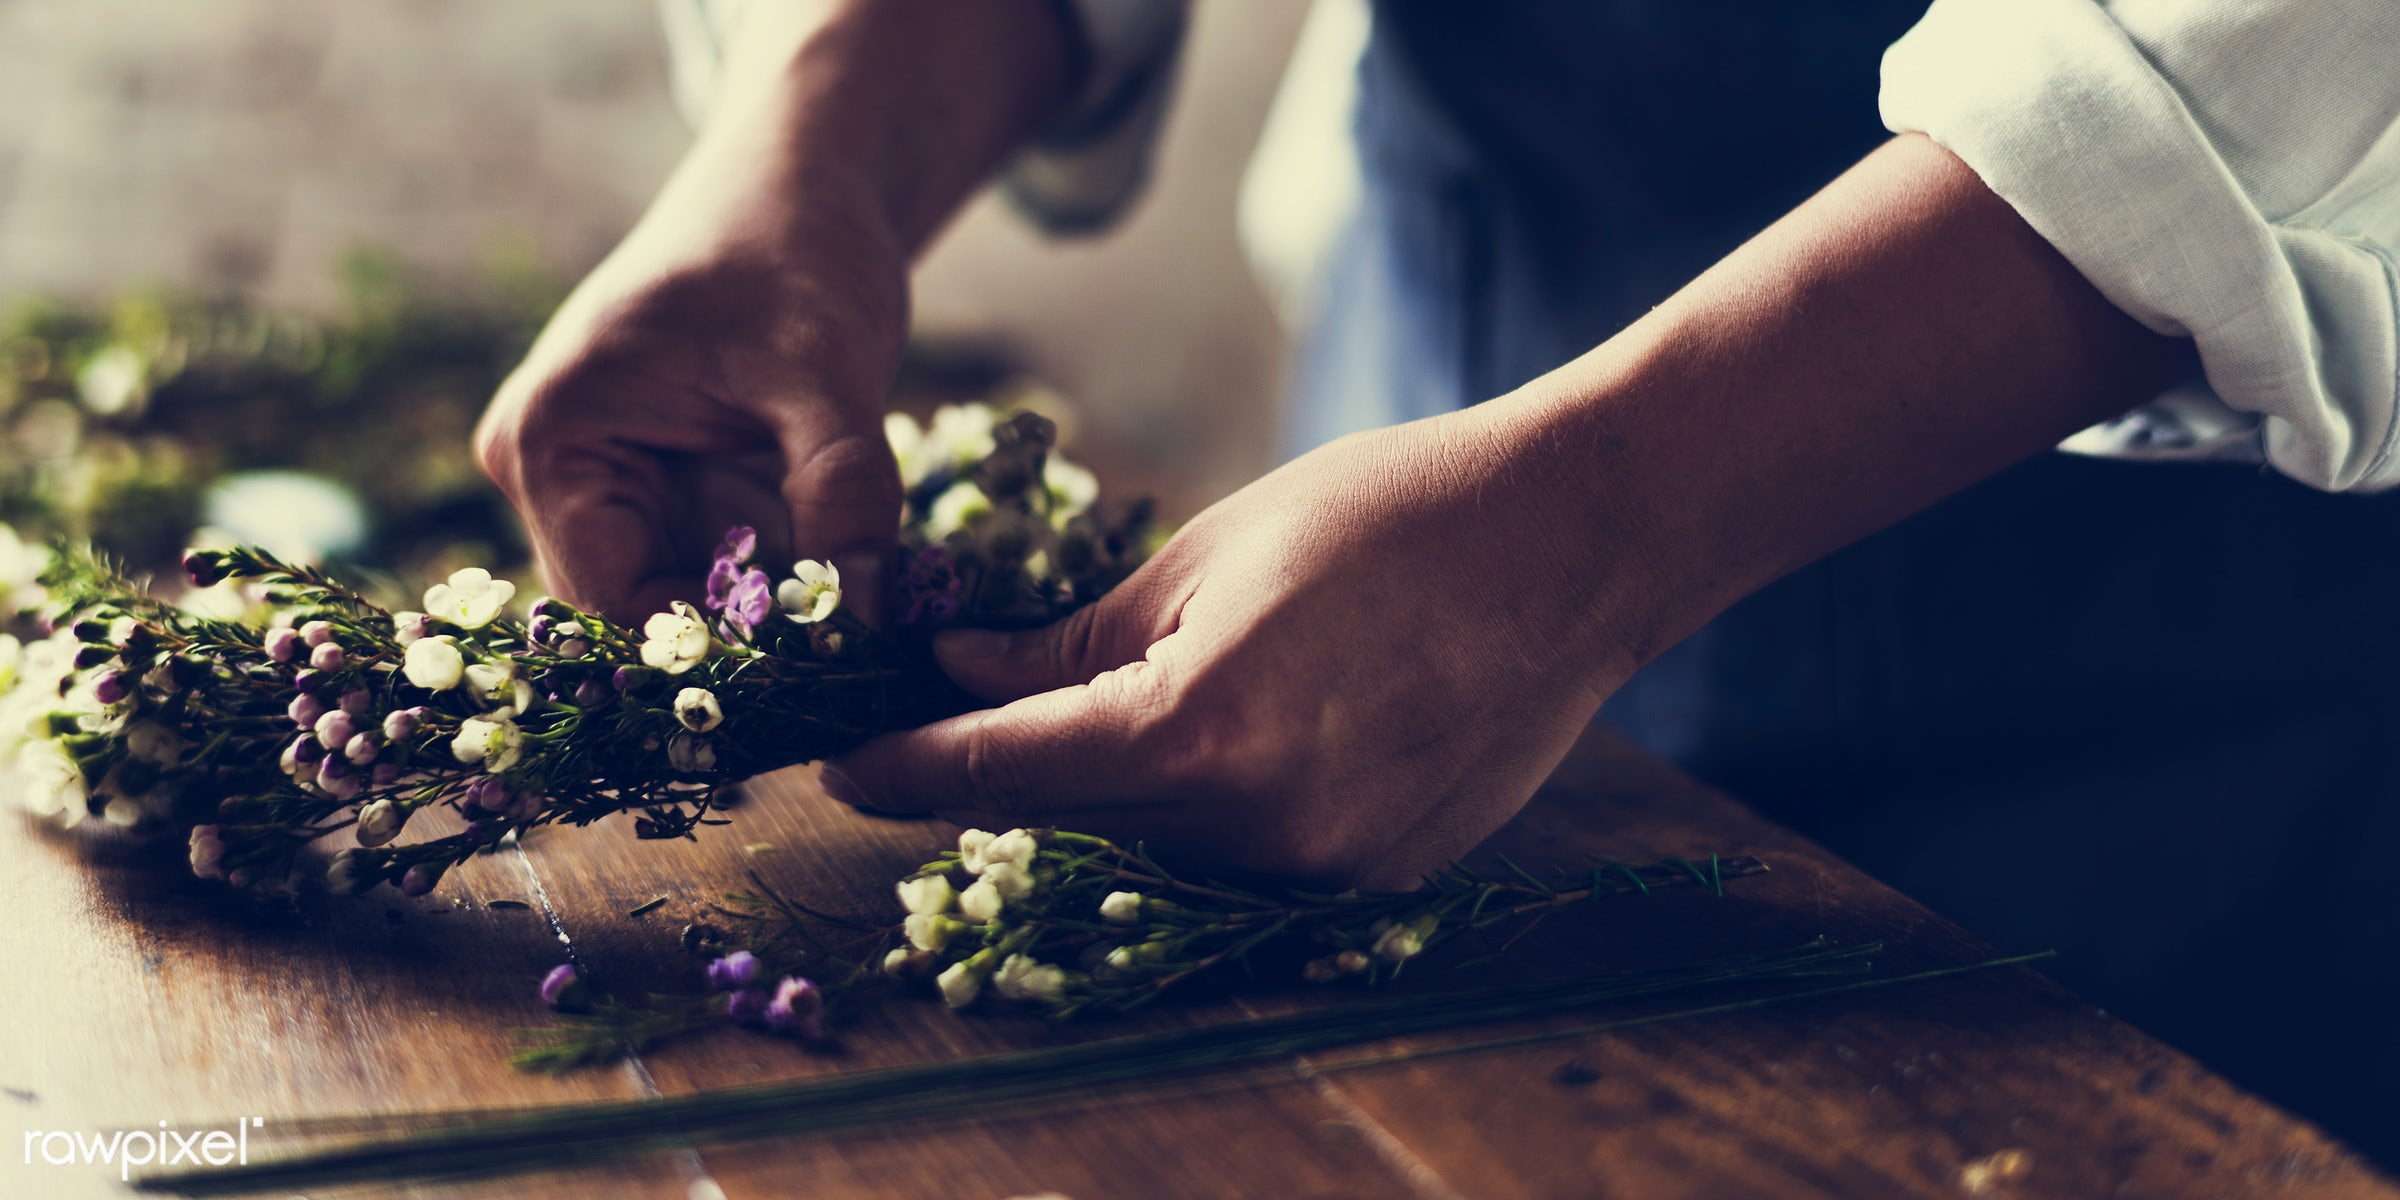 plant, person, holding, crown, daisy, floral garland, people, blossom, headband, hands, fresh, flower, decoration, flora,...